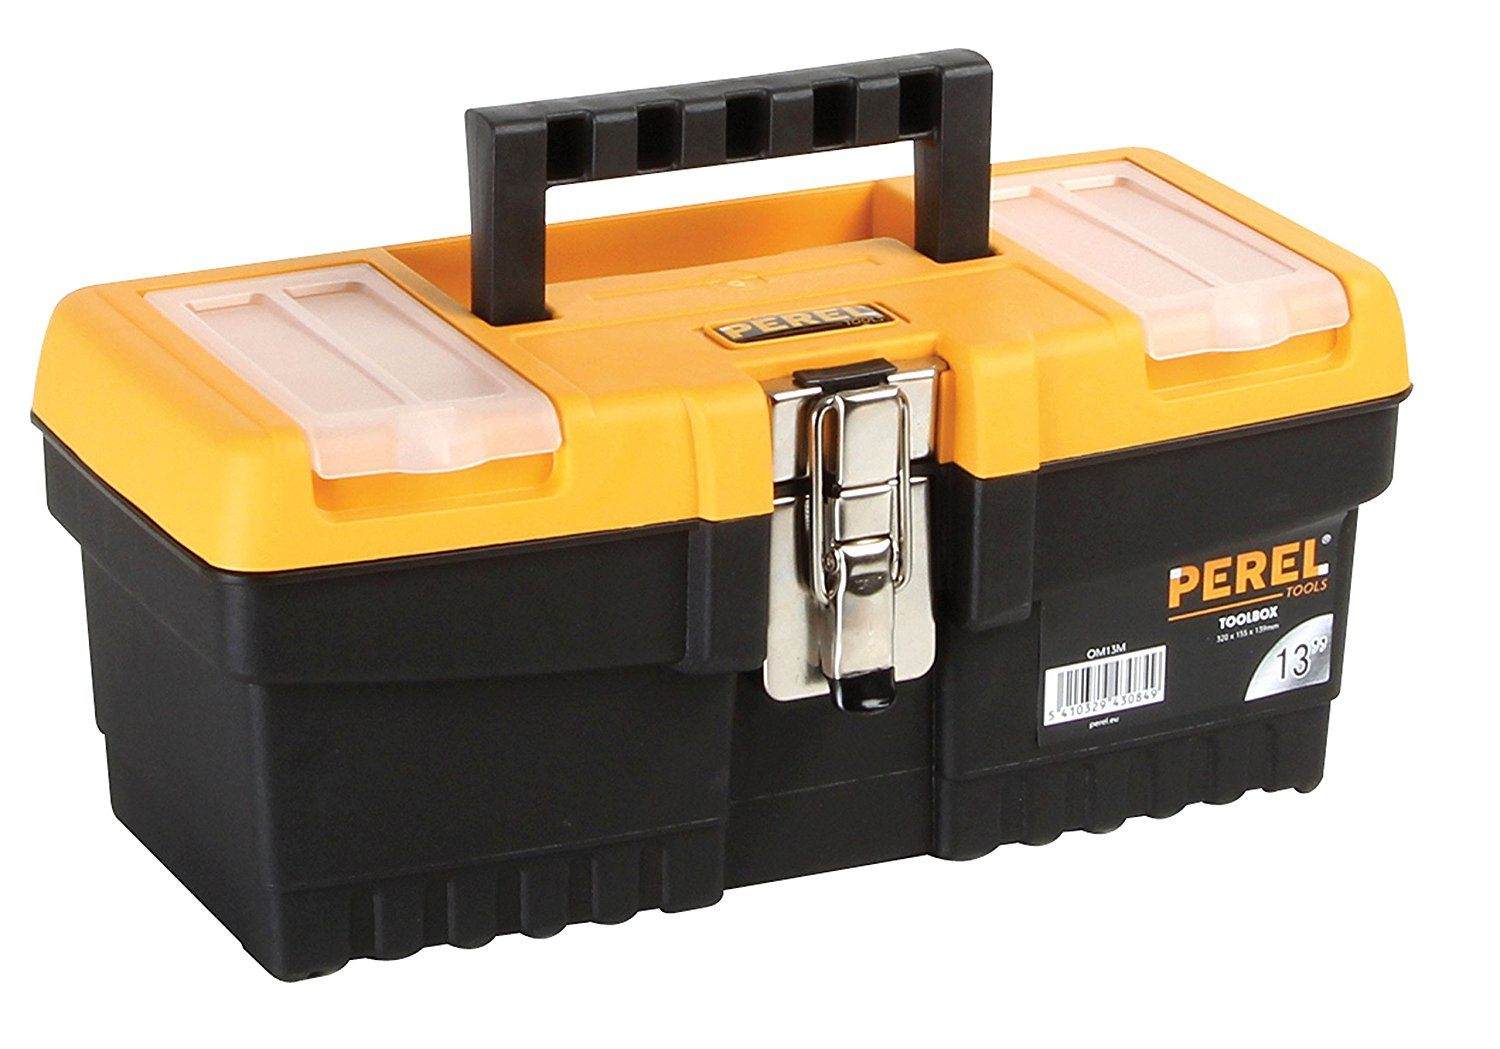 Perel OM13M 13-Inch Toolbox with Metal Latches